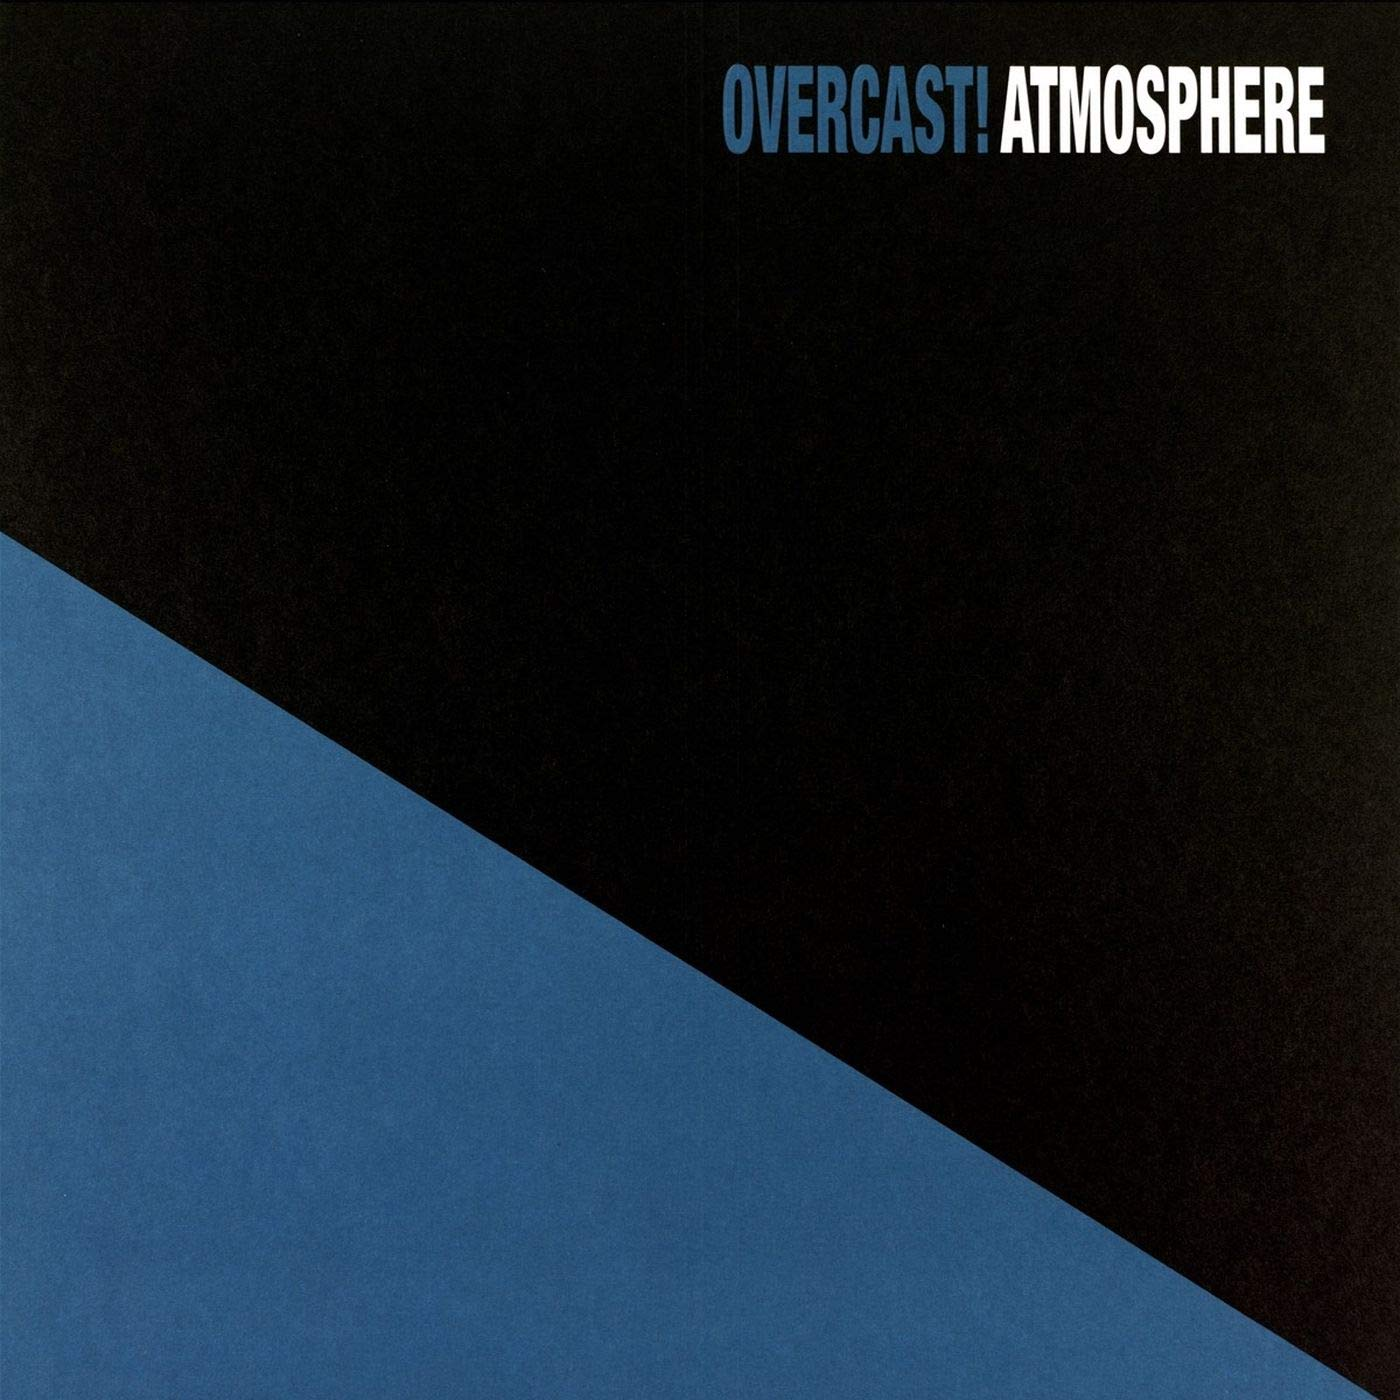 Atmosphere - Overcast! [3LP] (20th Anniversary, White Colored Vinyl, download, 3 previously unreleased bonus tracks)